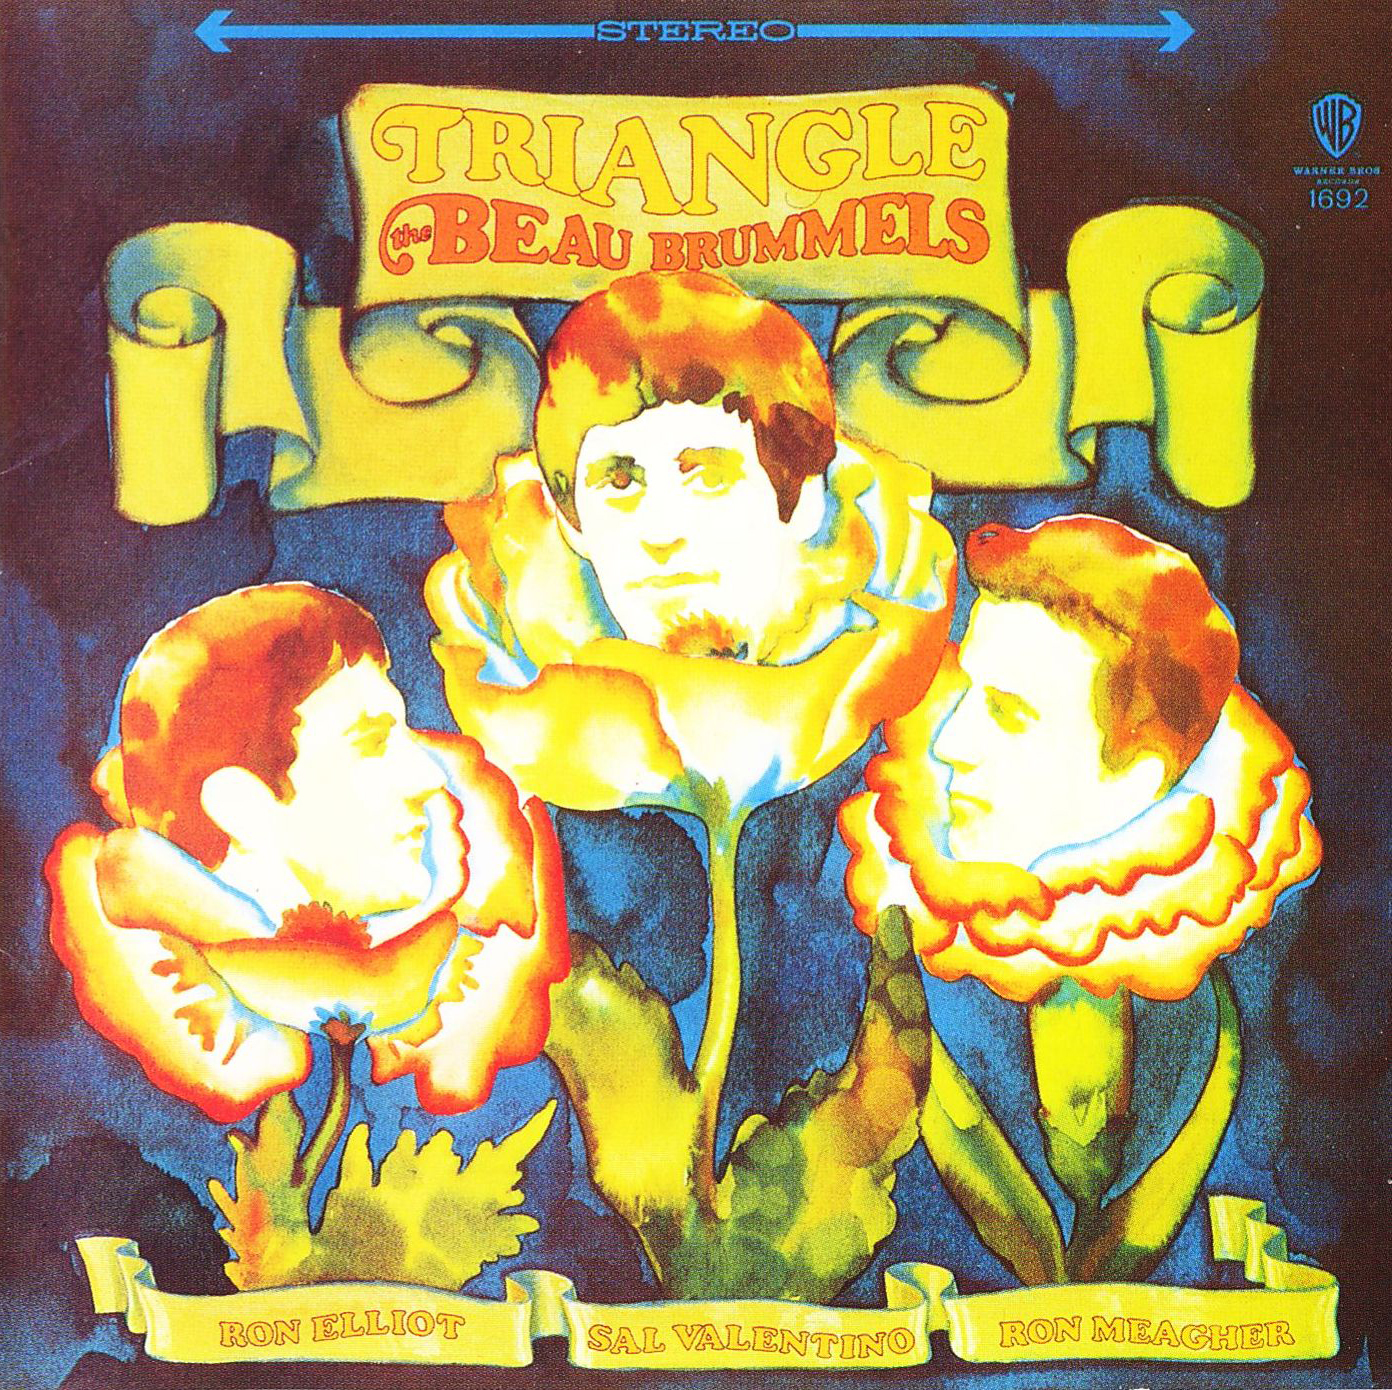 The Beau Brummels - Don't Talk To Strangers